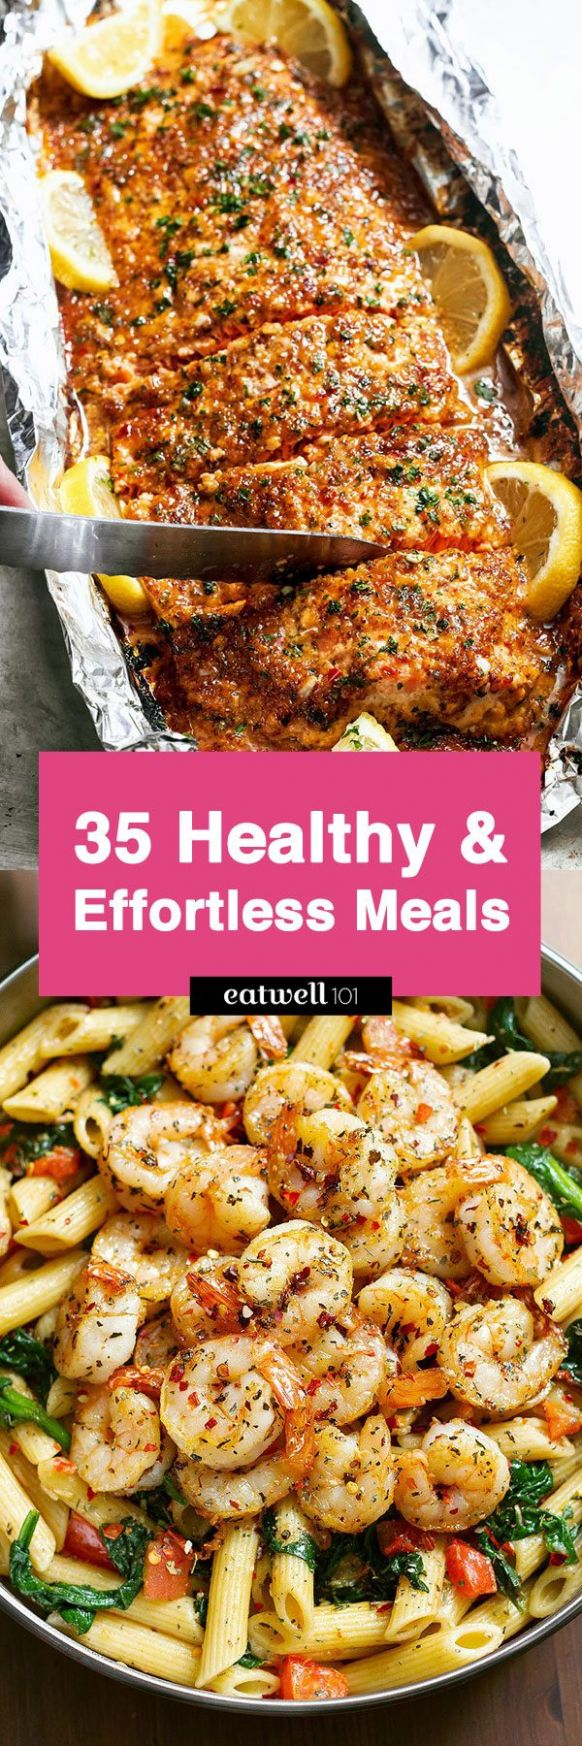 Easy Healthy Dinner Ideas: 10 Low Effort and Healthy Dinner ..